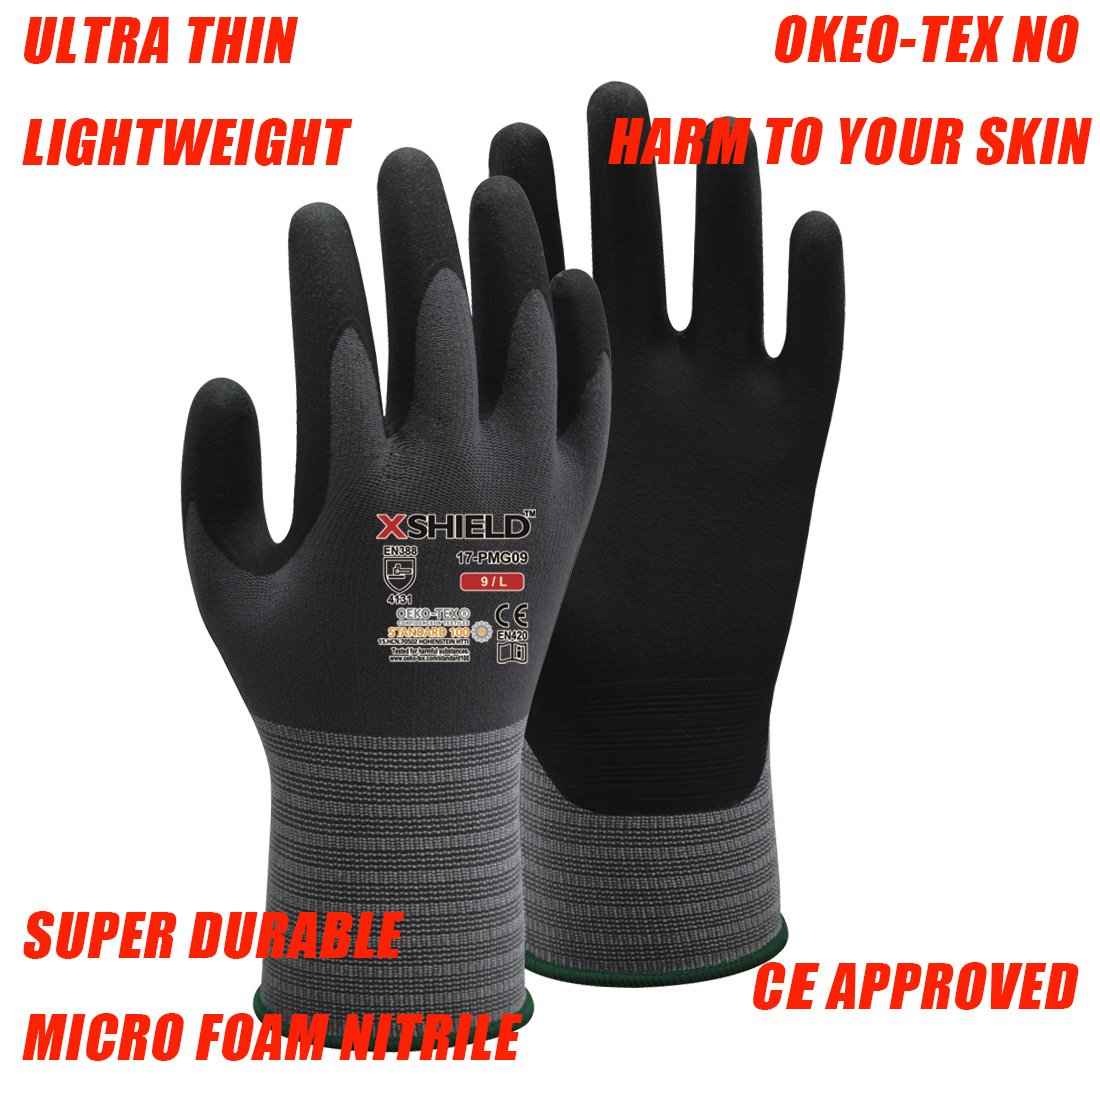 XSHIELD 17-PMG,Ultimate-Nylon, Micro-Foam Nitrile Grip Safety Work Gloves for General Purpose, OKEO-Tex Certificated,Ideal for Auto Repair, DIY,Home Improvement,12 Pairs(Large) by X-Shield (Image #2)